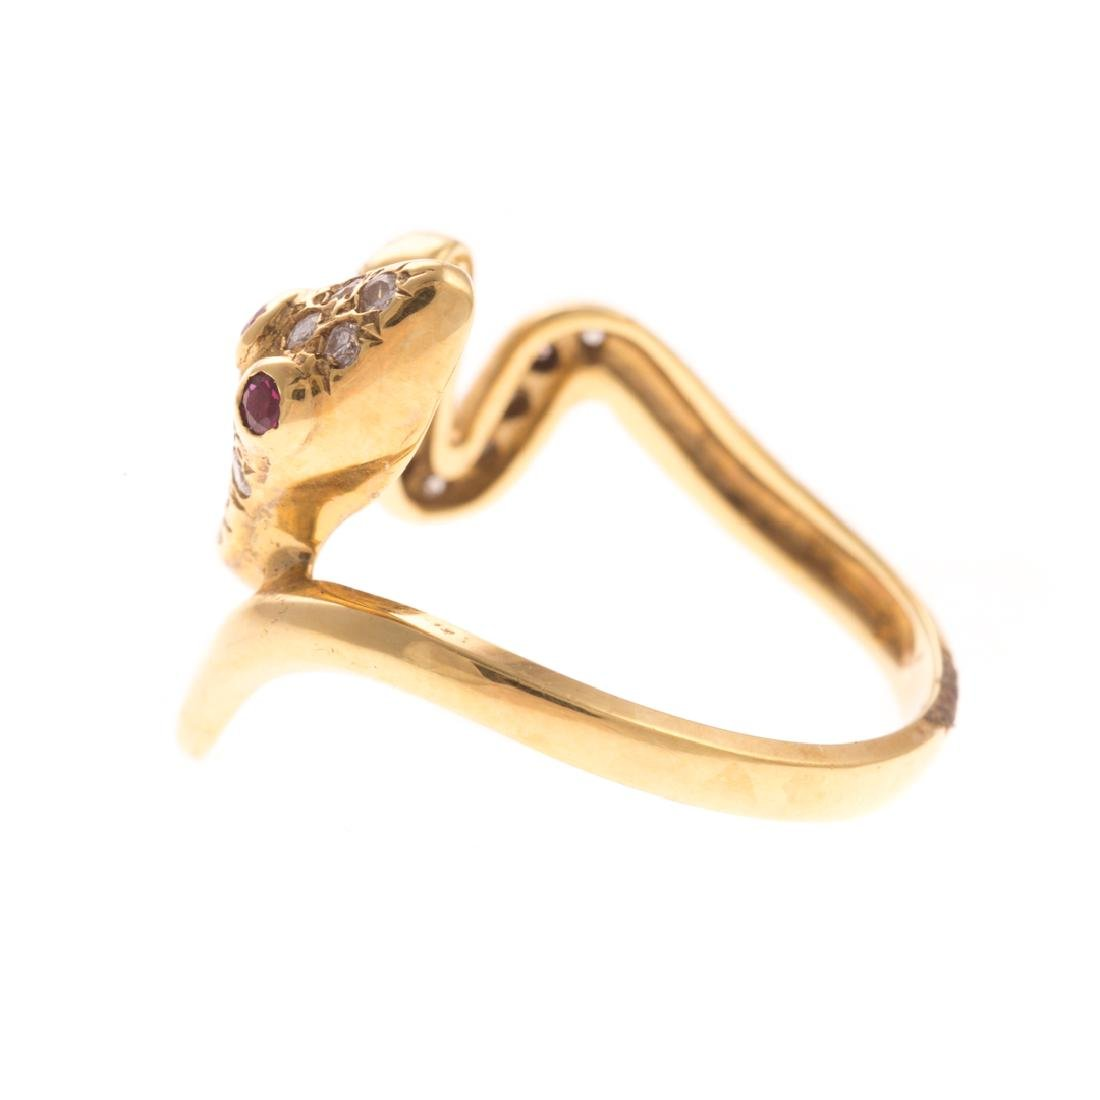 A Lady's Diamond Serpent Ring in 18K Gold - 3